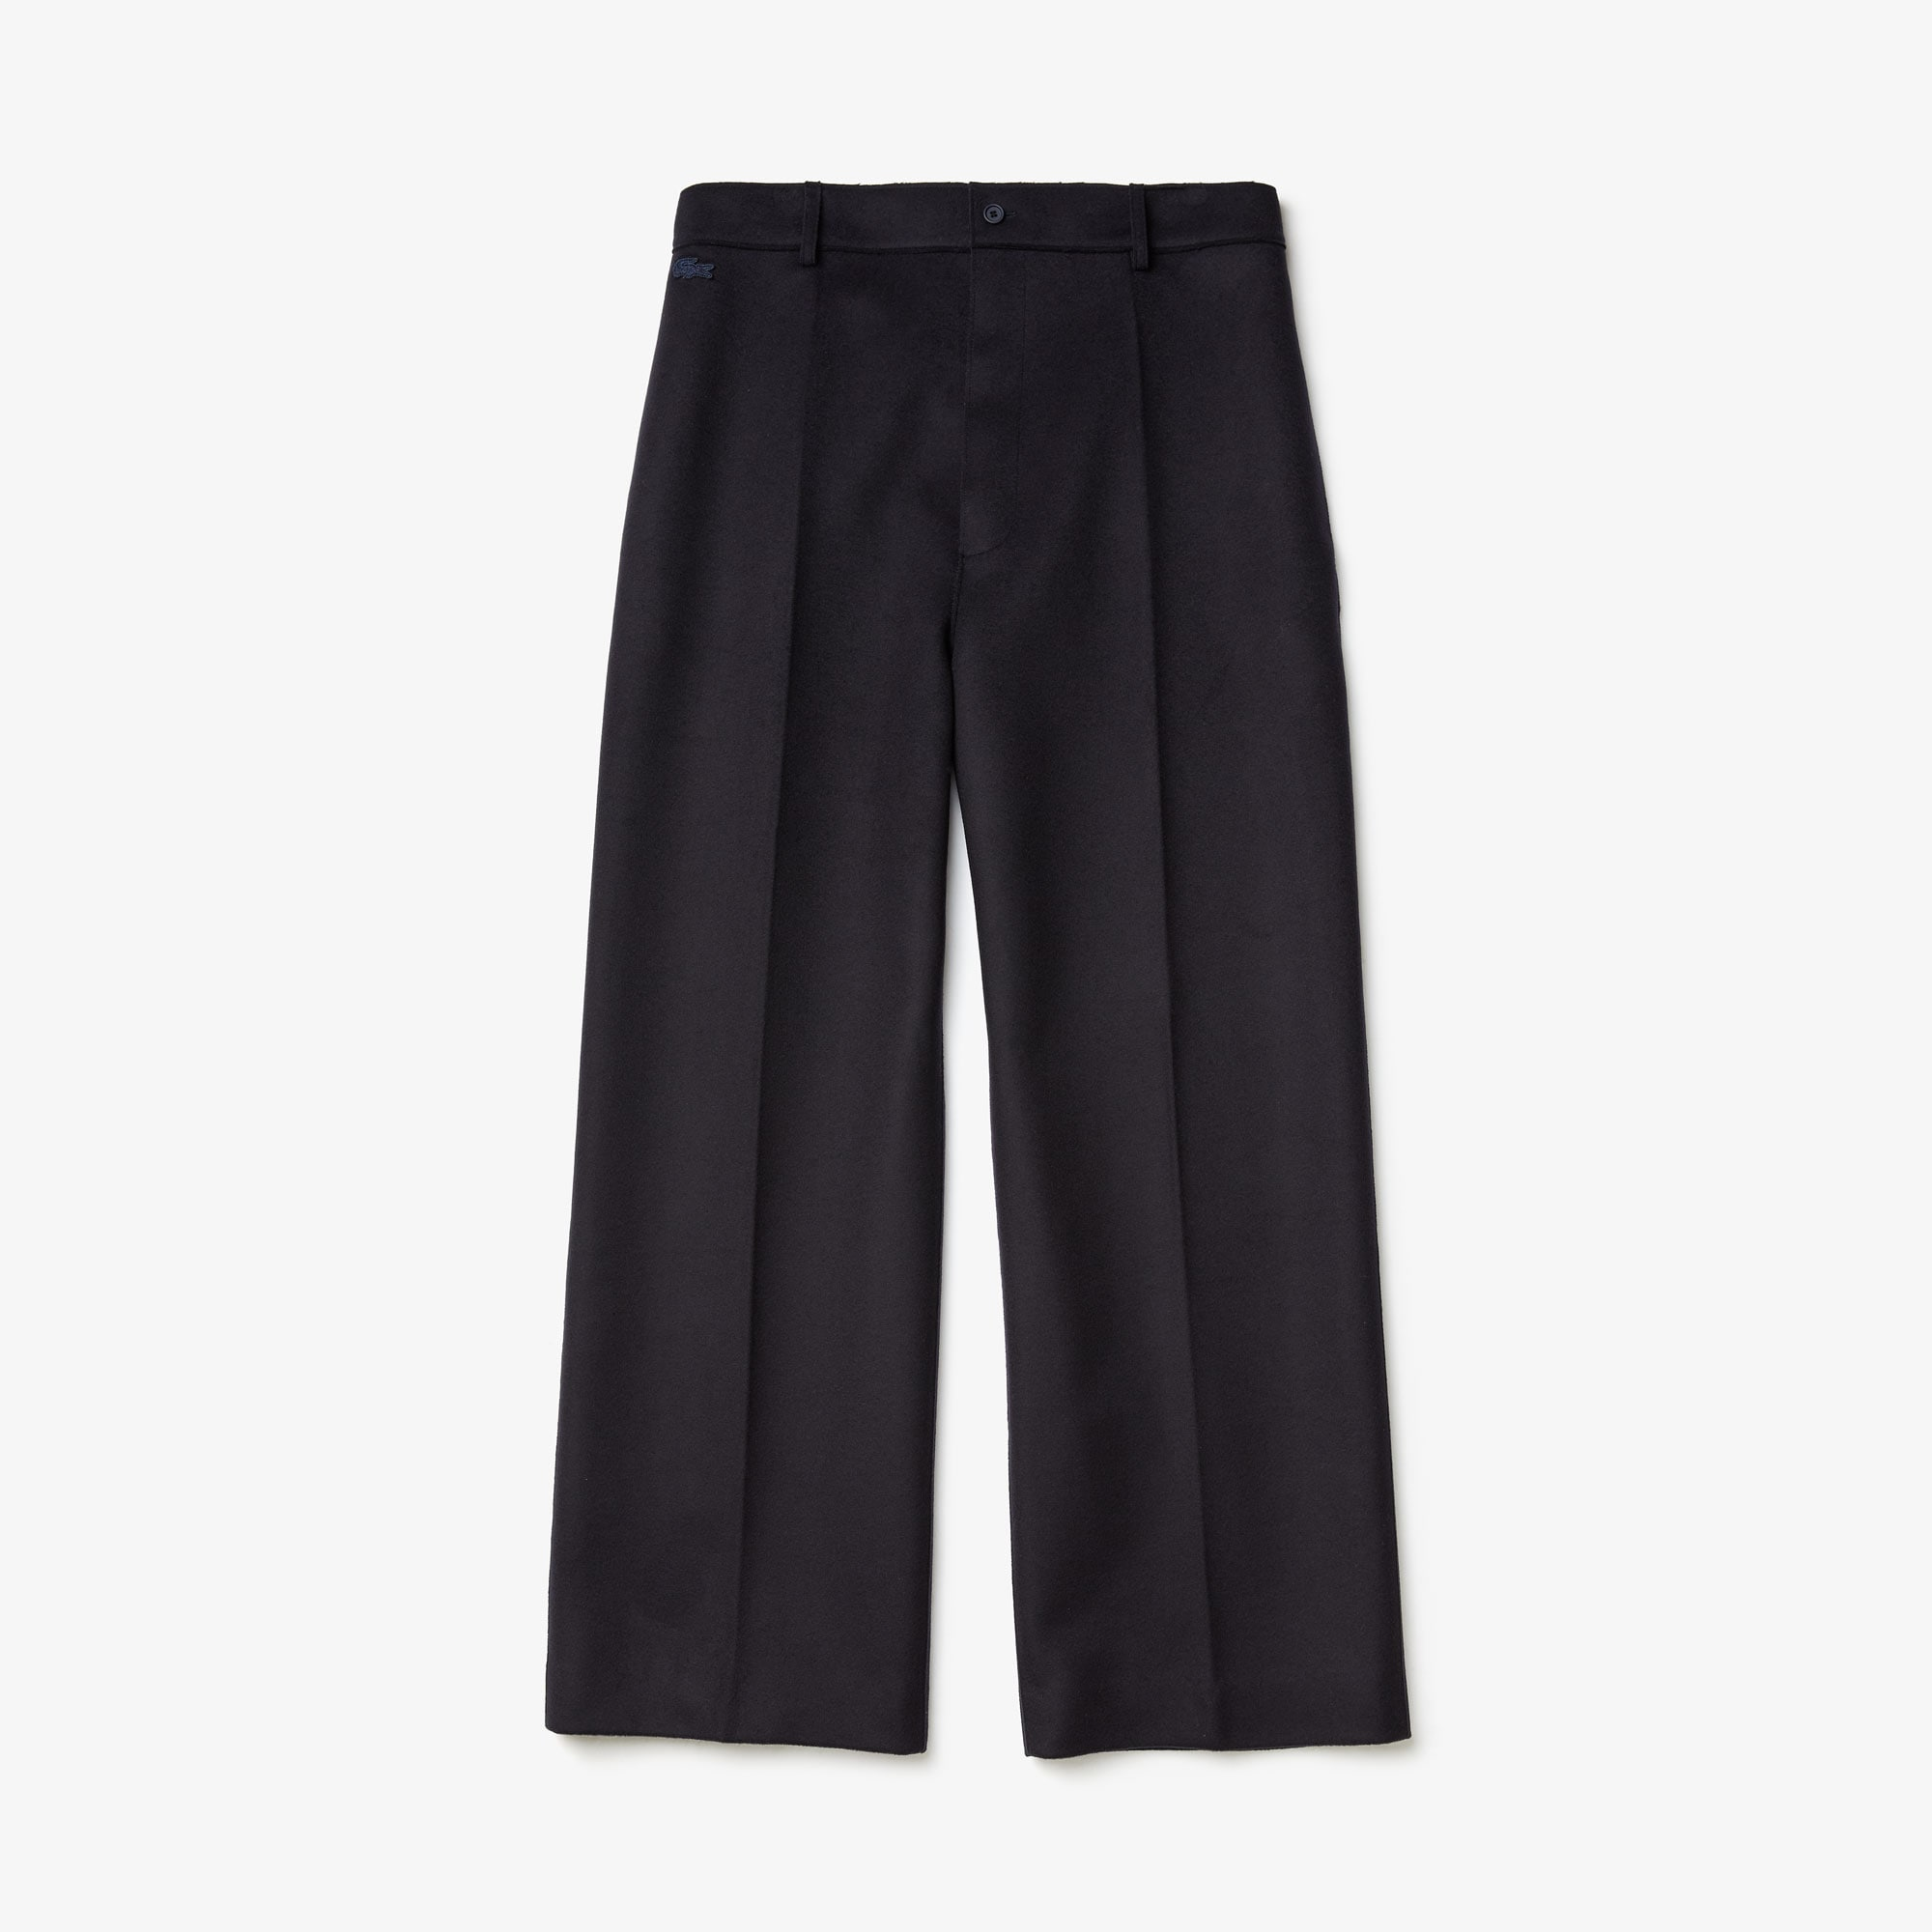 Men's Fashion Show Wide Leg Wool Pants